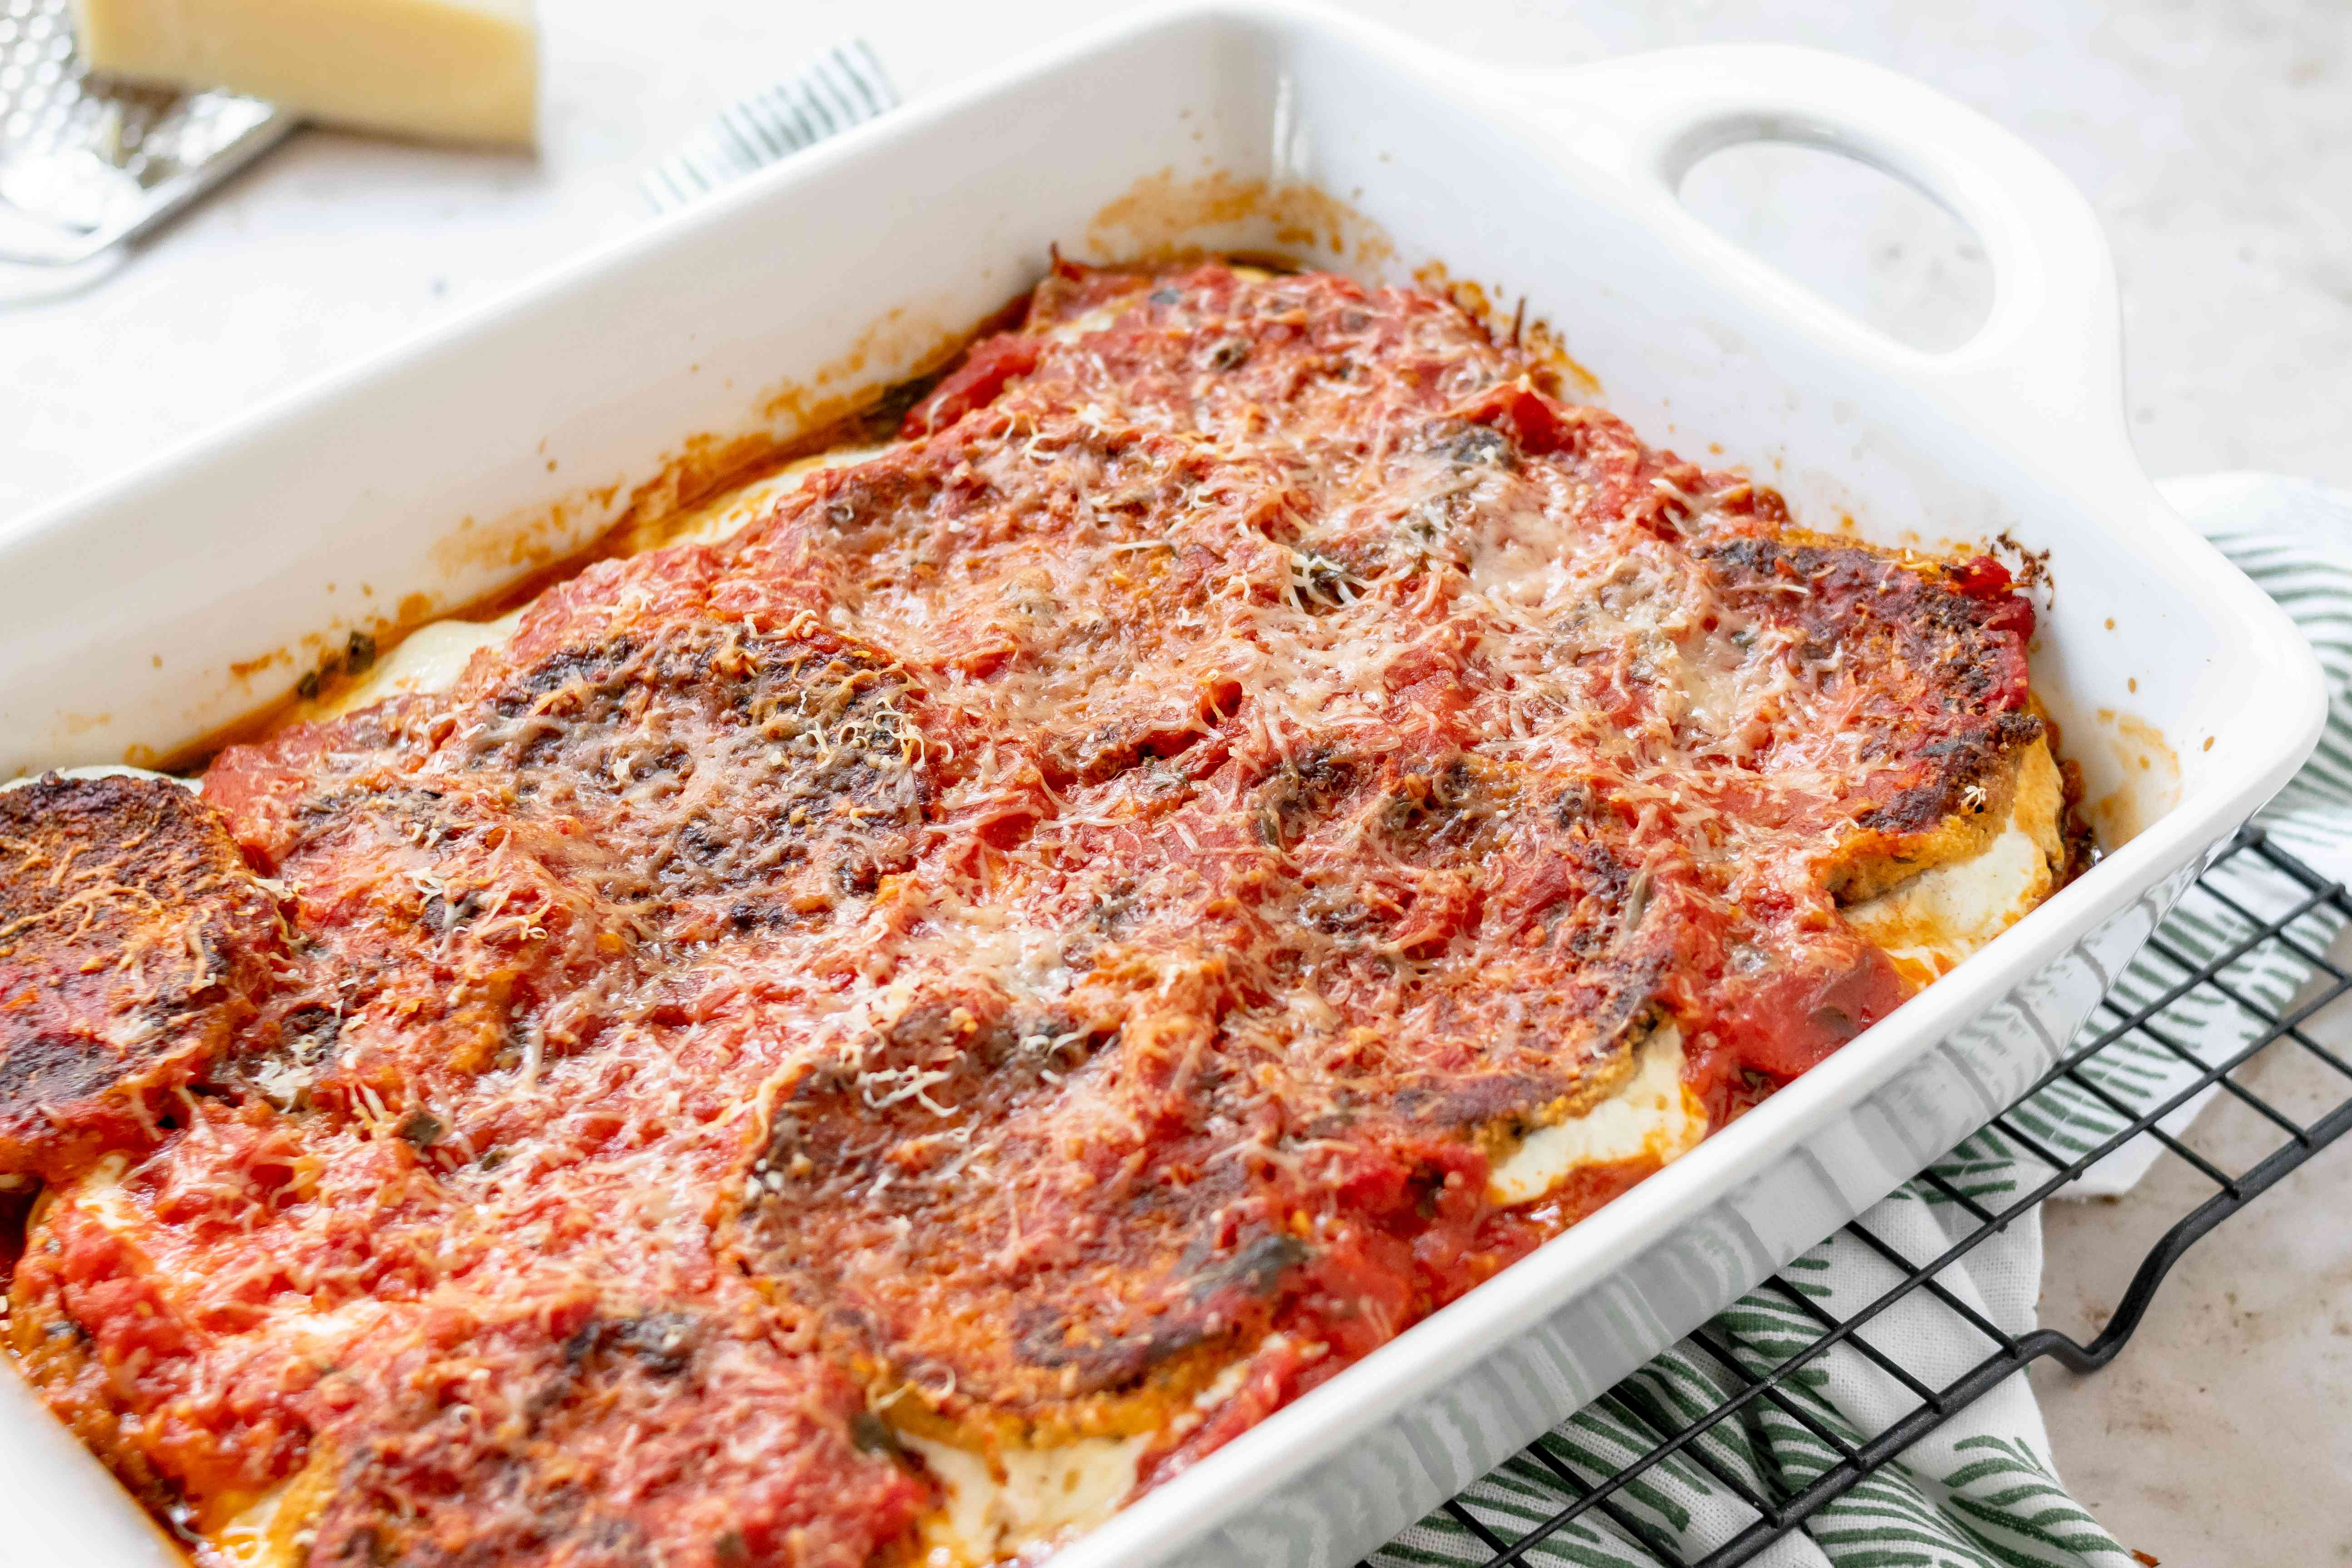 Baked eggplant parmesan in a casserole dish.